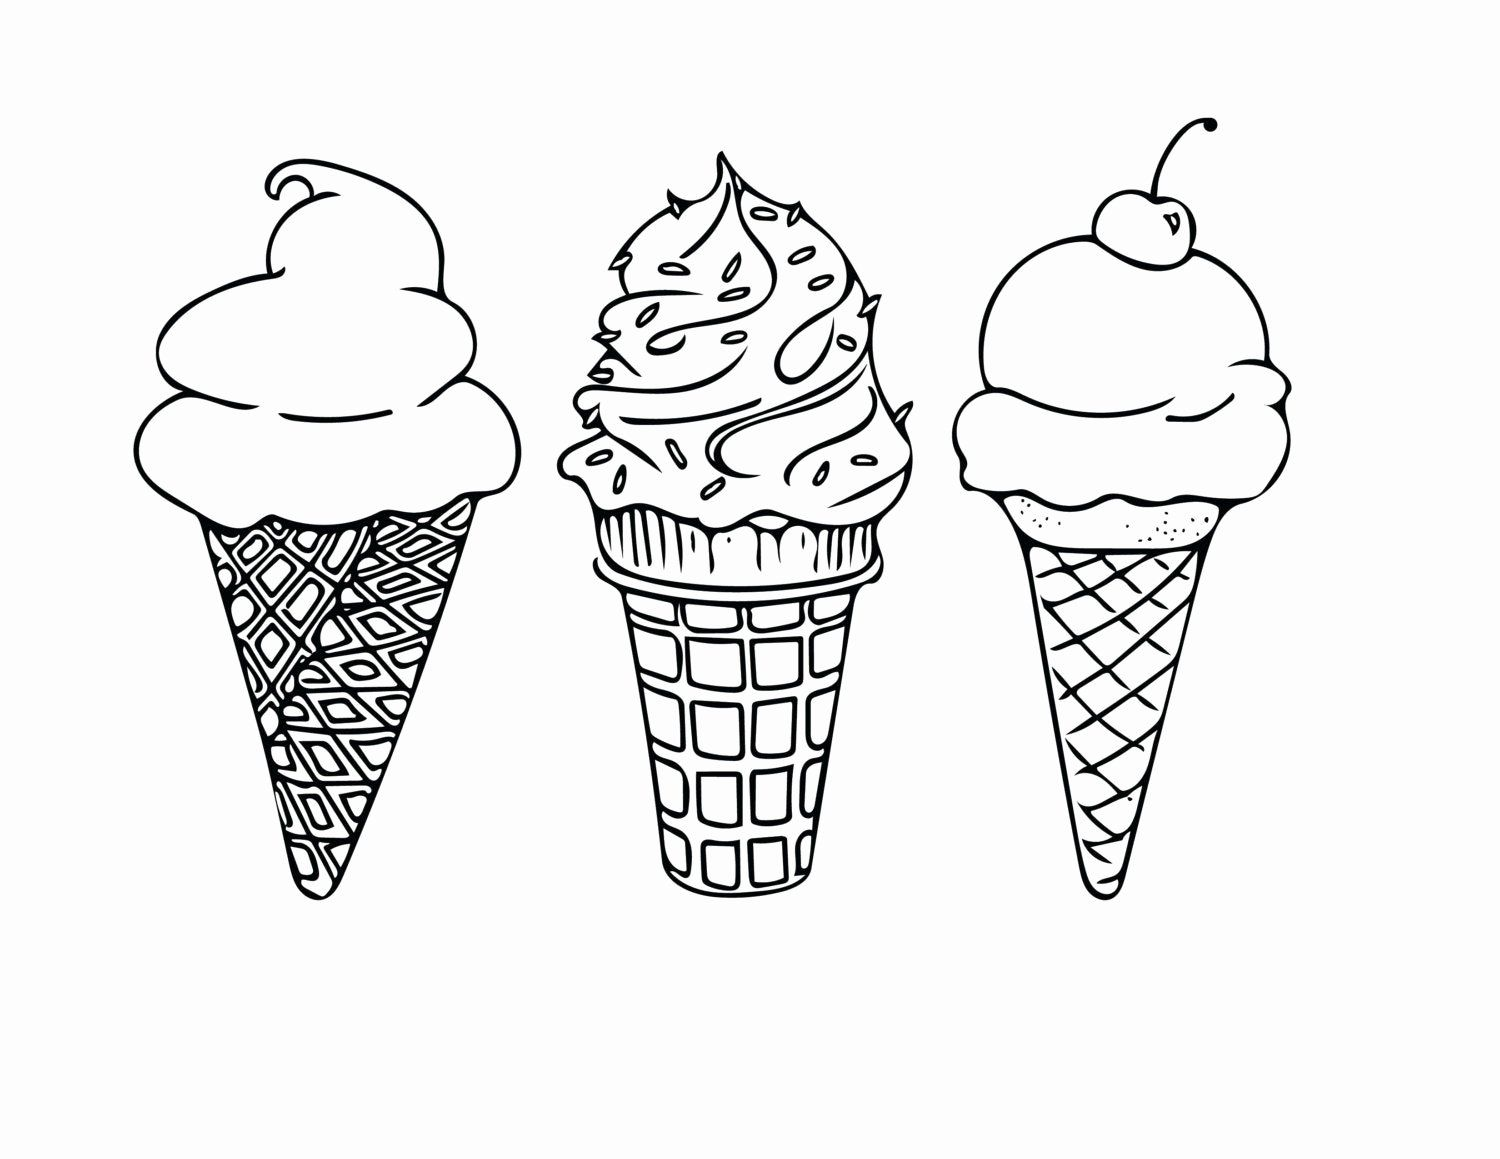 Coloring Page Ice Cream Unique Printable Coloring Sheet Instant Download Ice Cream Cones In 2020 Ice Cream Coloring Pages Free Coloring Pages Ice Cream Tattoo